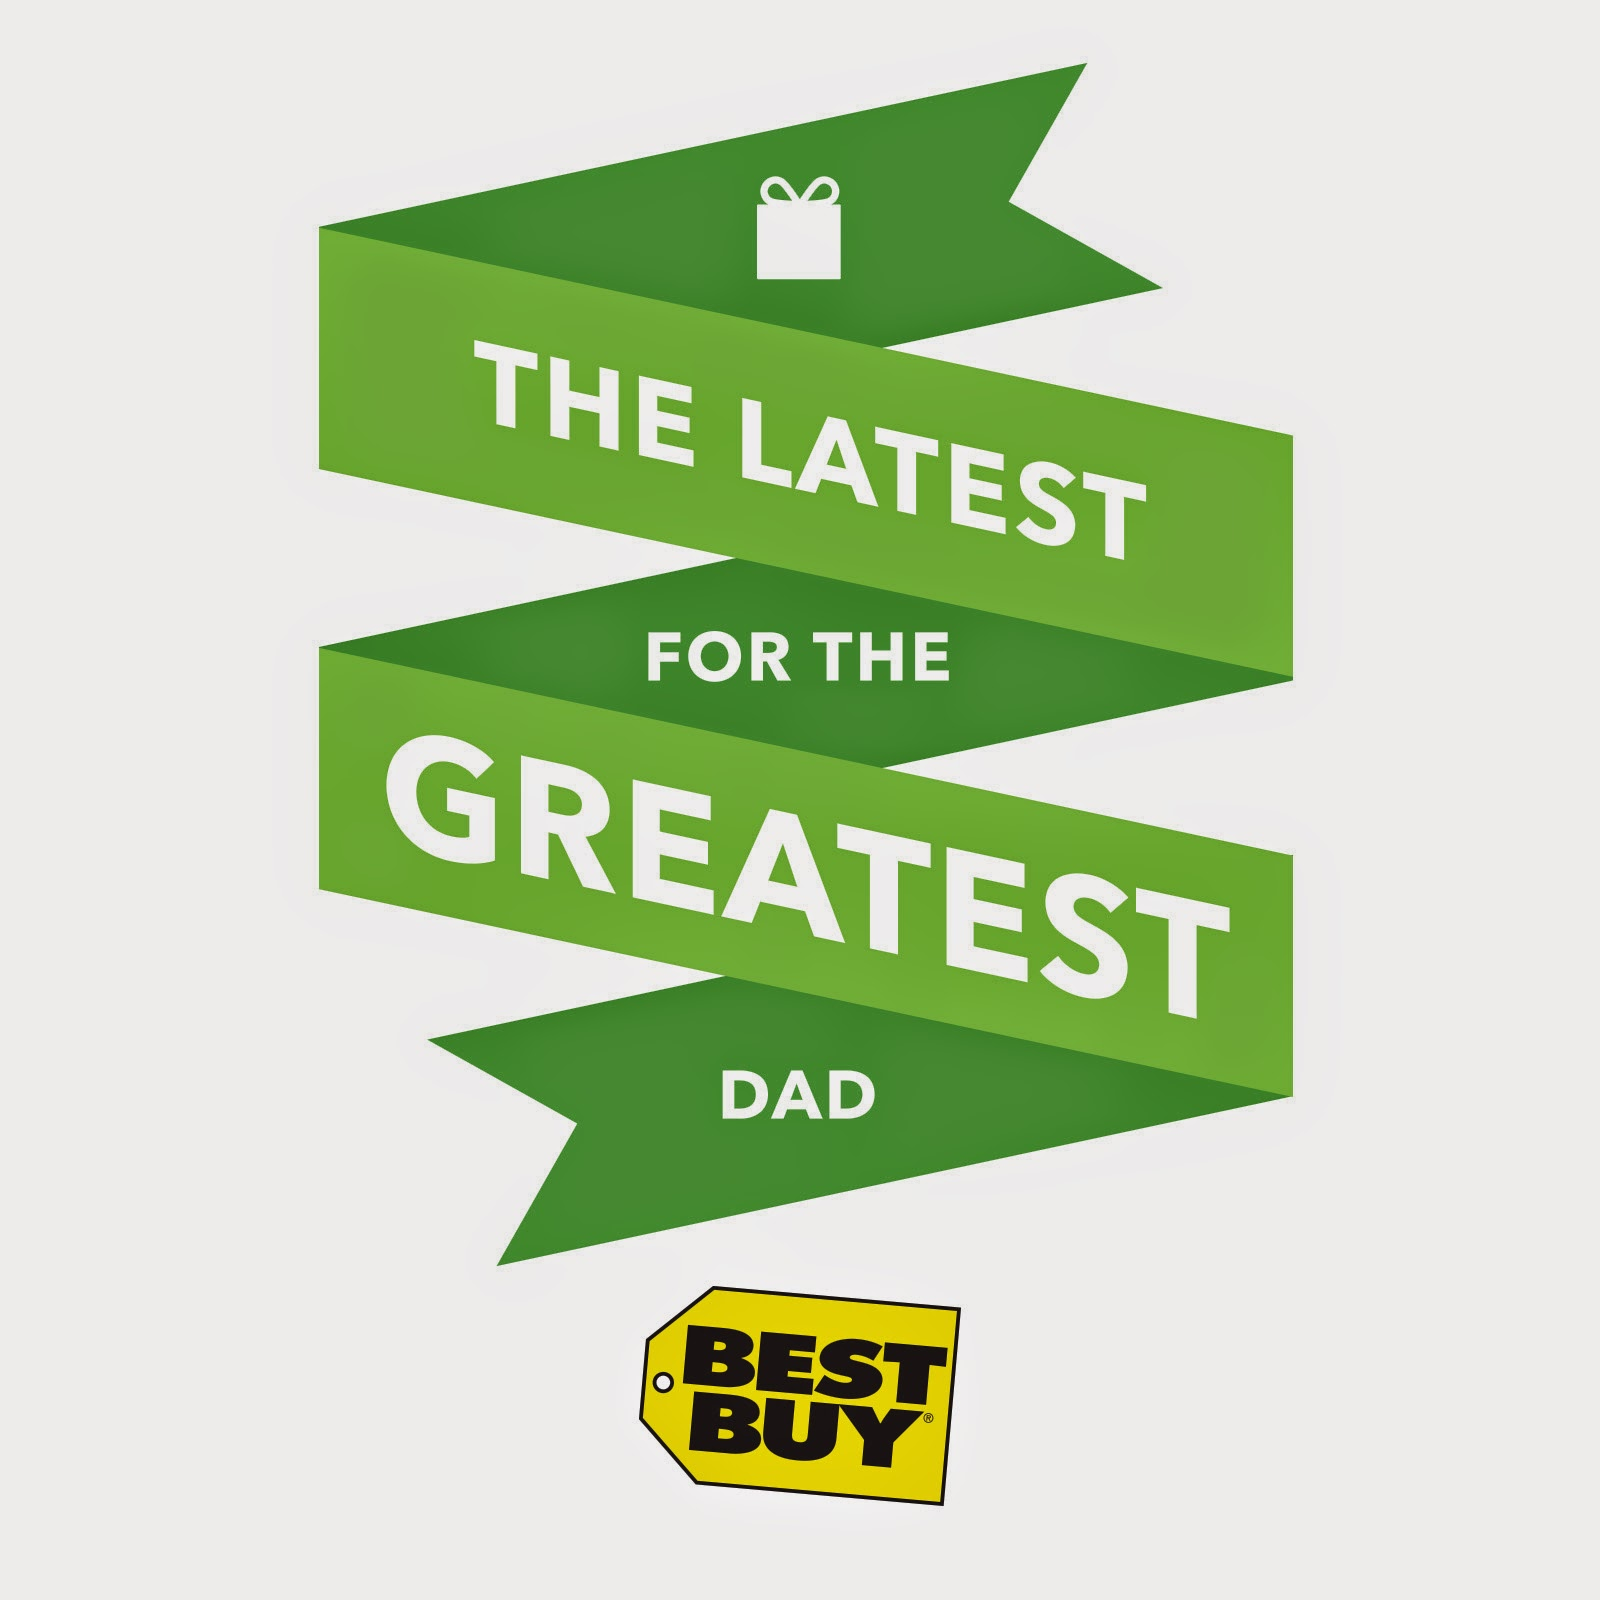 The Latest for the Greatest Dad @ Best Buy